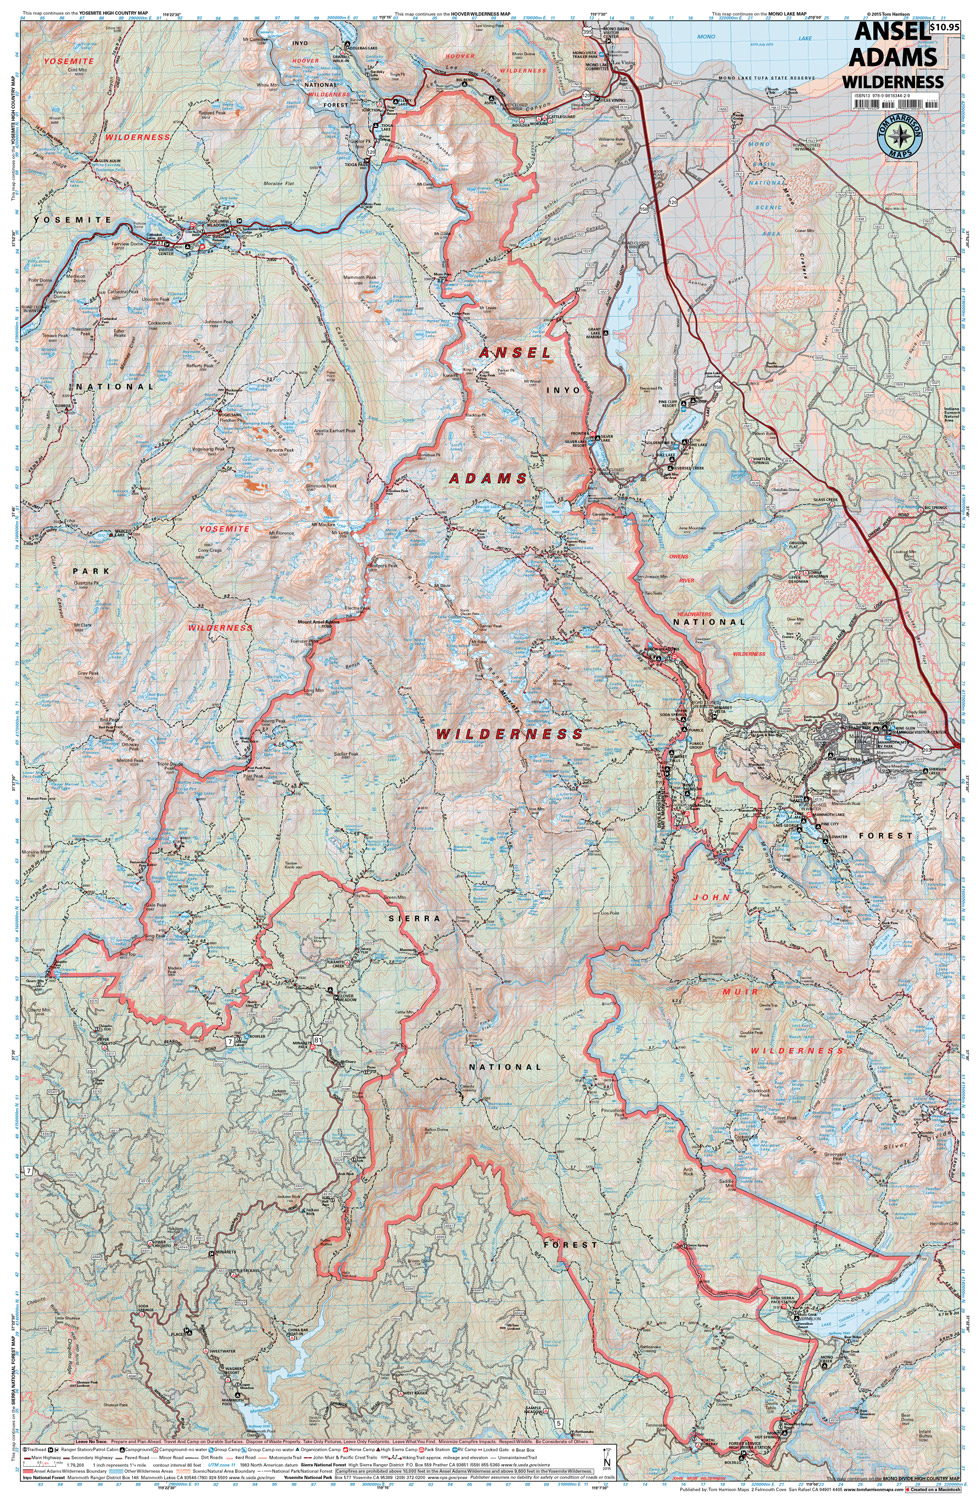 ansel adams wilderness. ansel adams wilderness – tom harrison maps